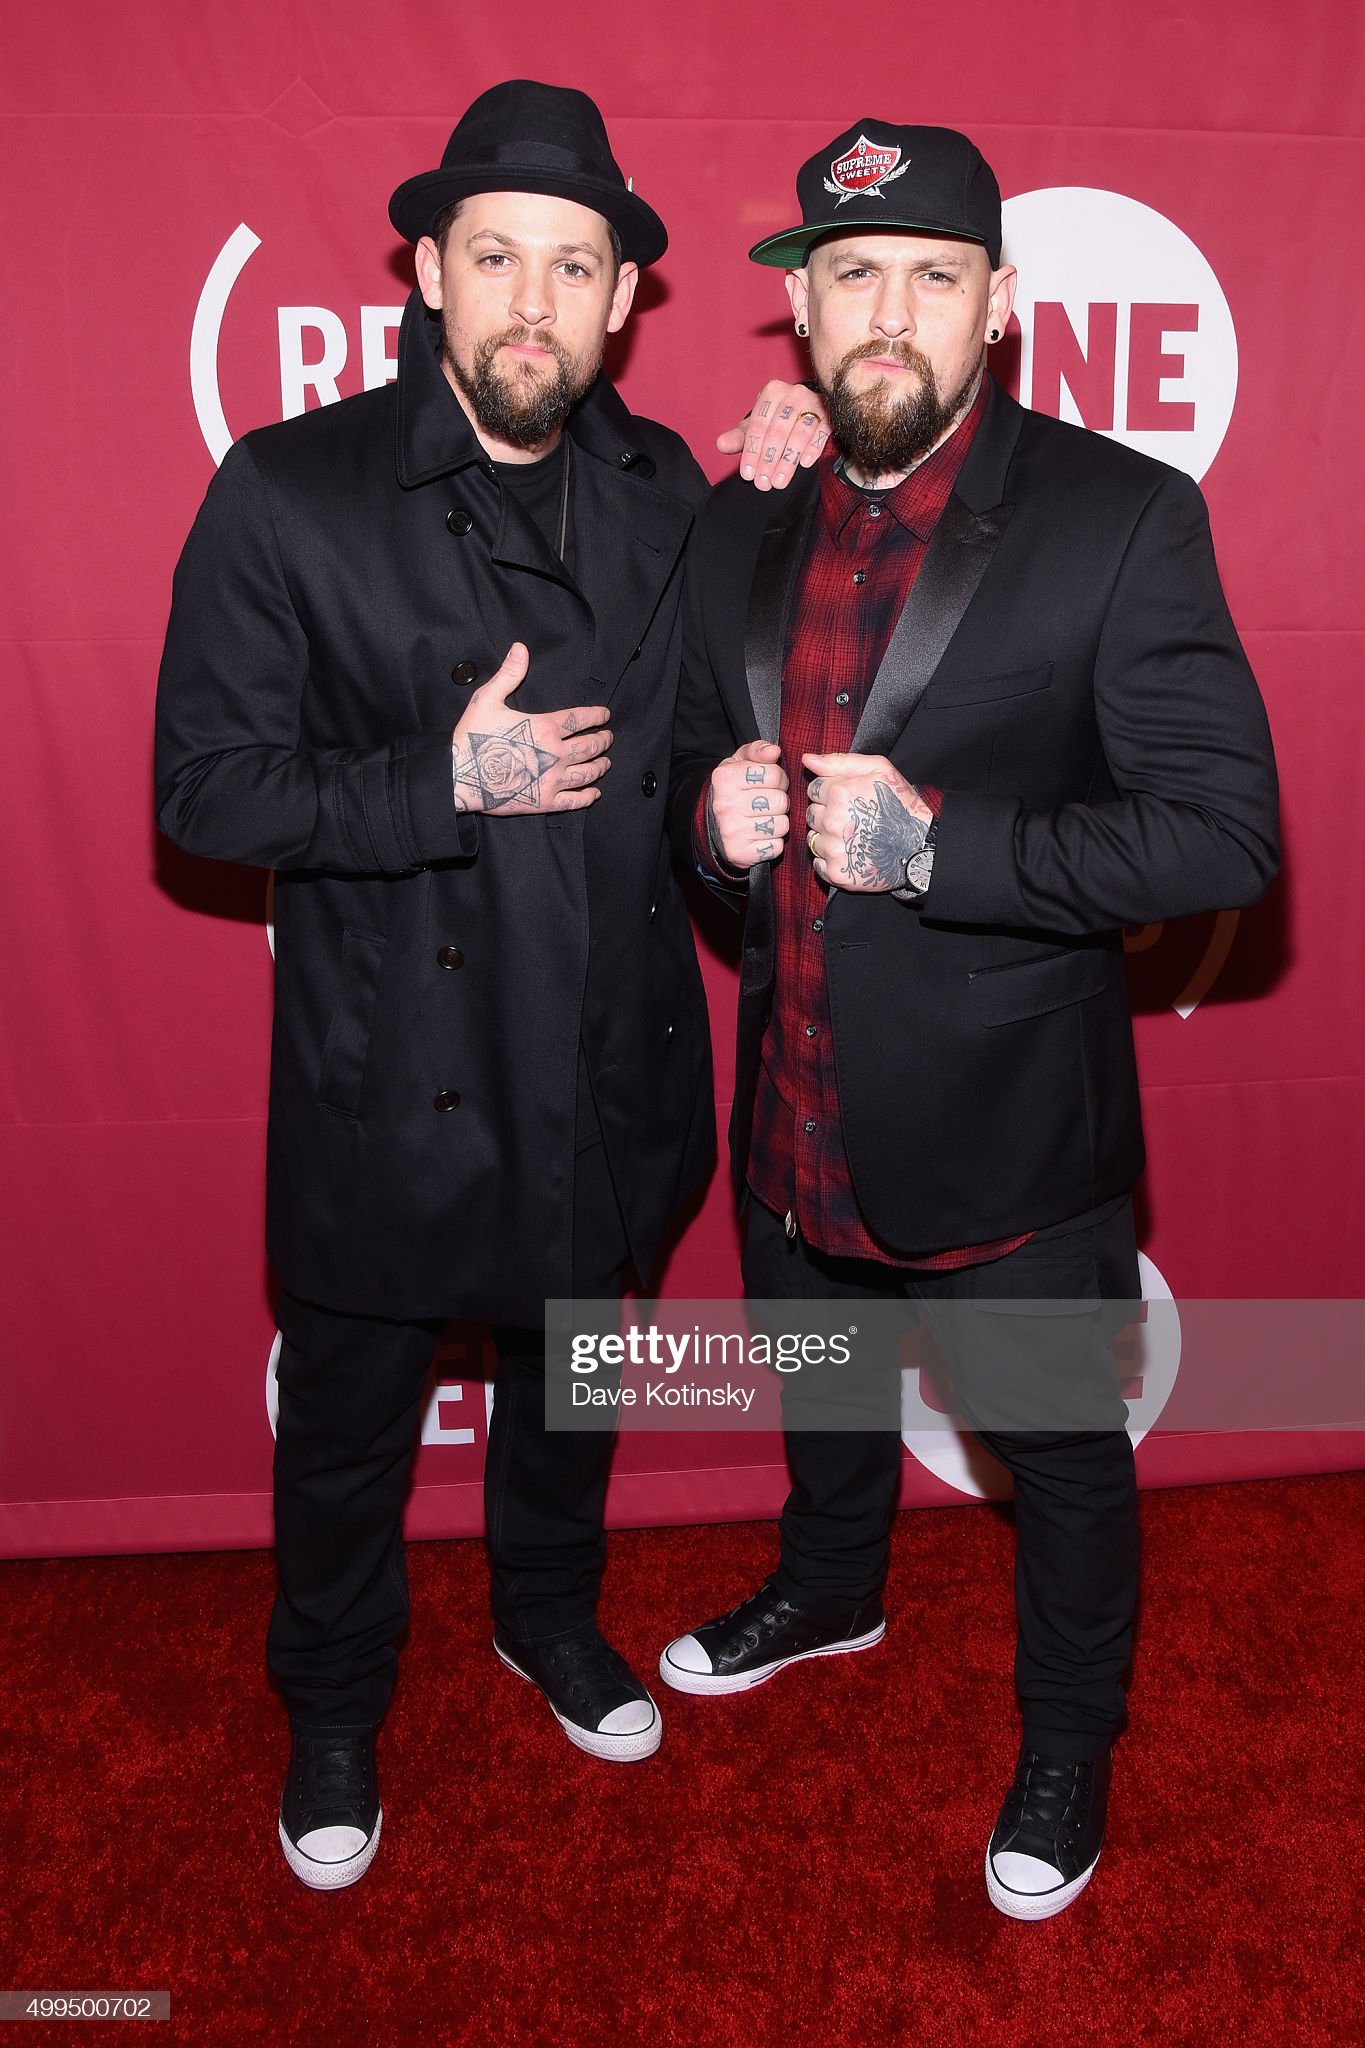 ¿Cuánto mide Joel Madden? - Altura - Real height Artists-joel-madden-and-benji-madden-attend-the-one-campaign-and-s-picture-id499500702?s=2048x2048